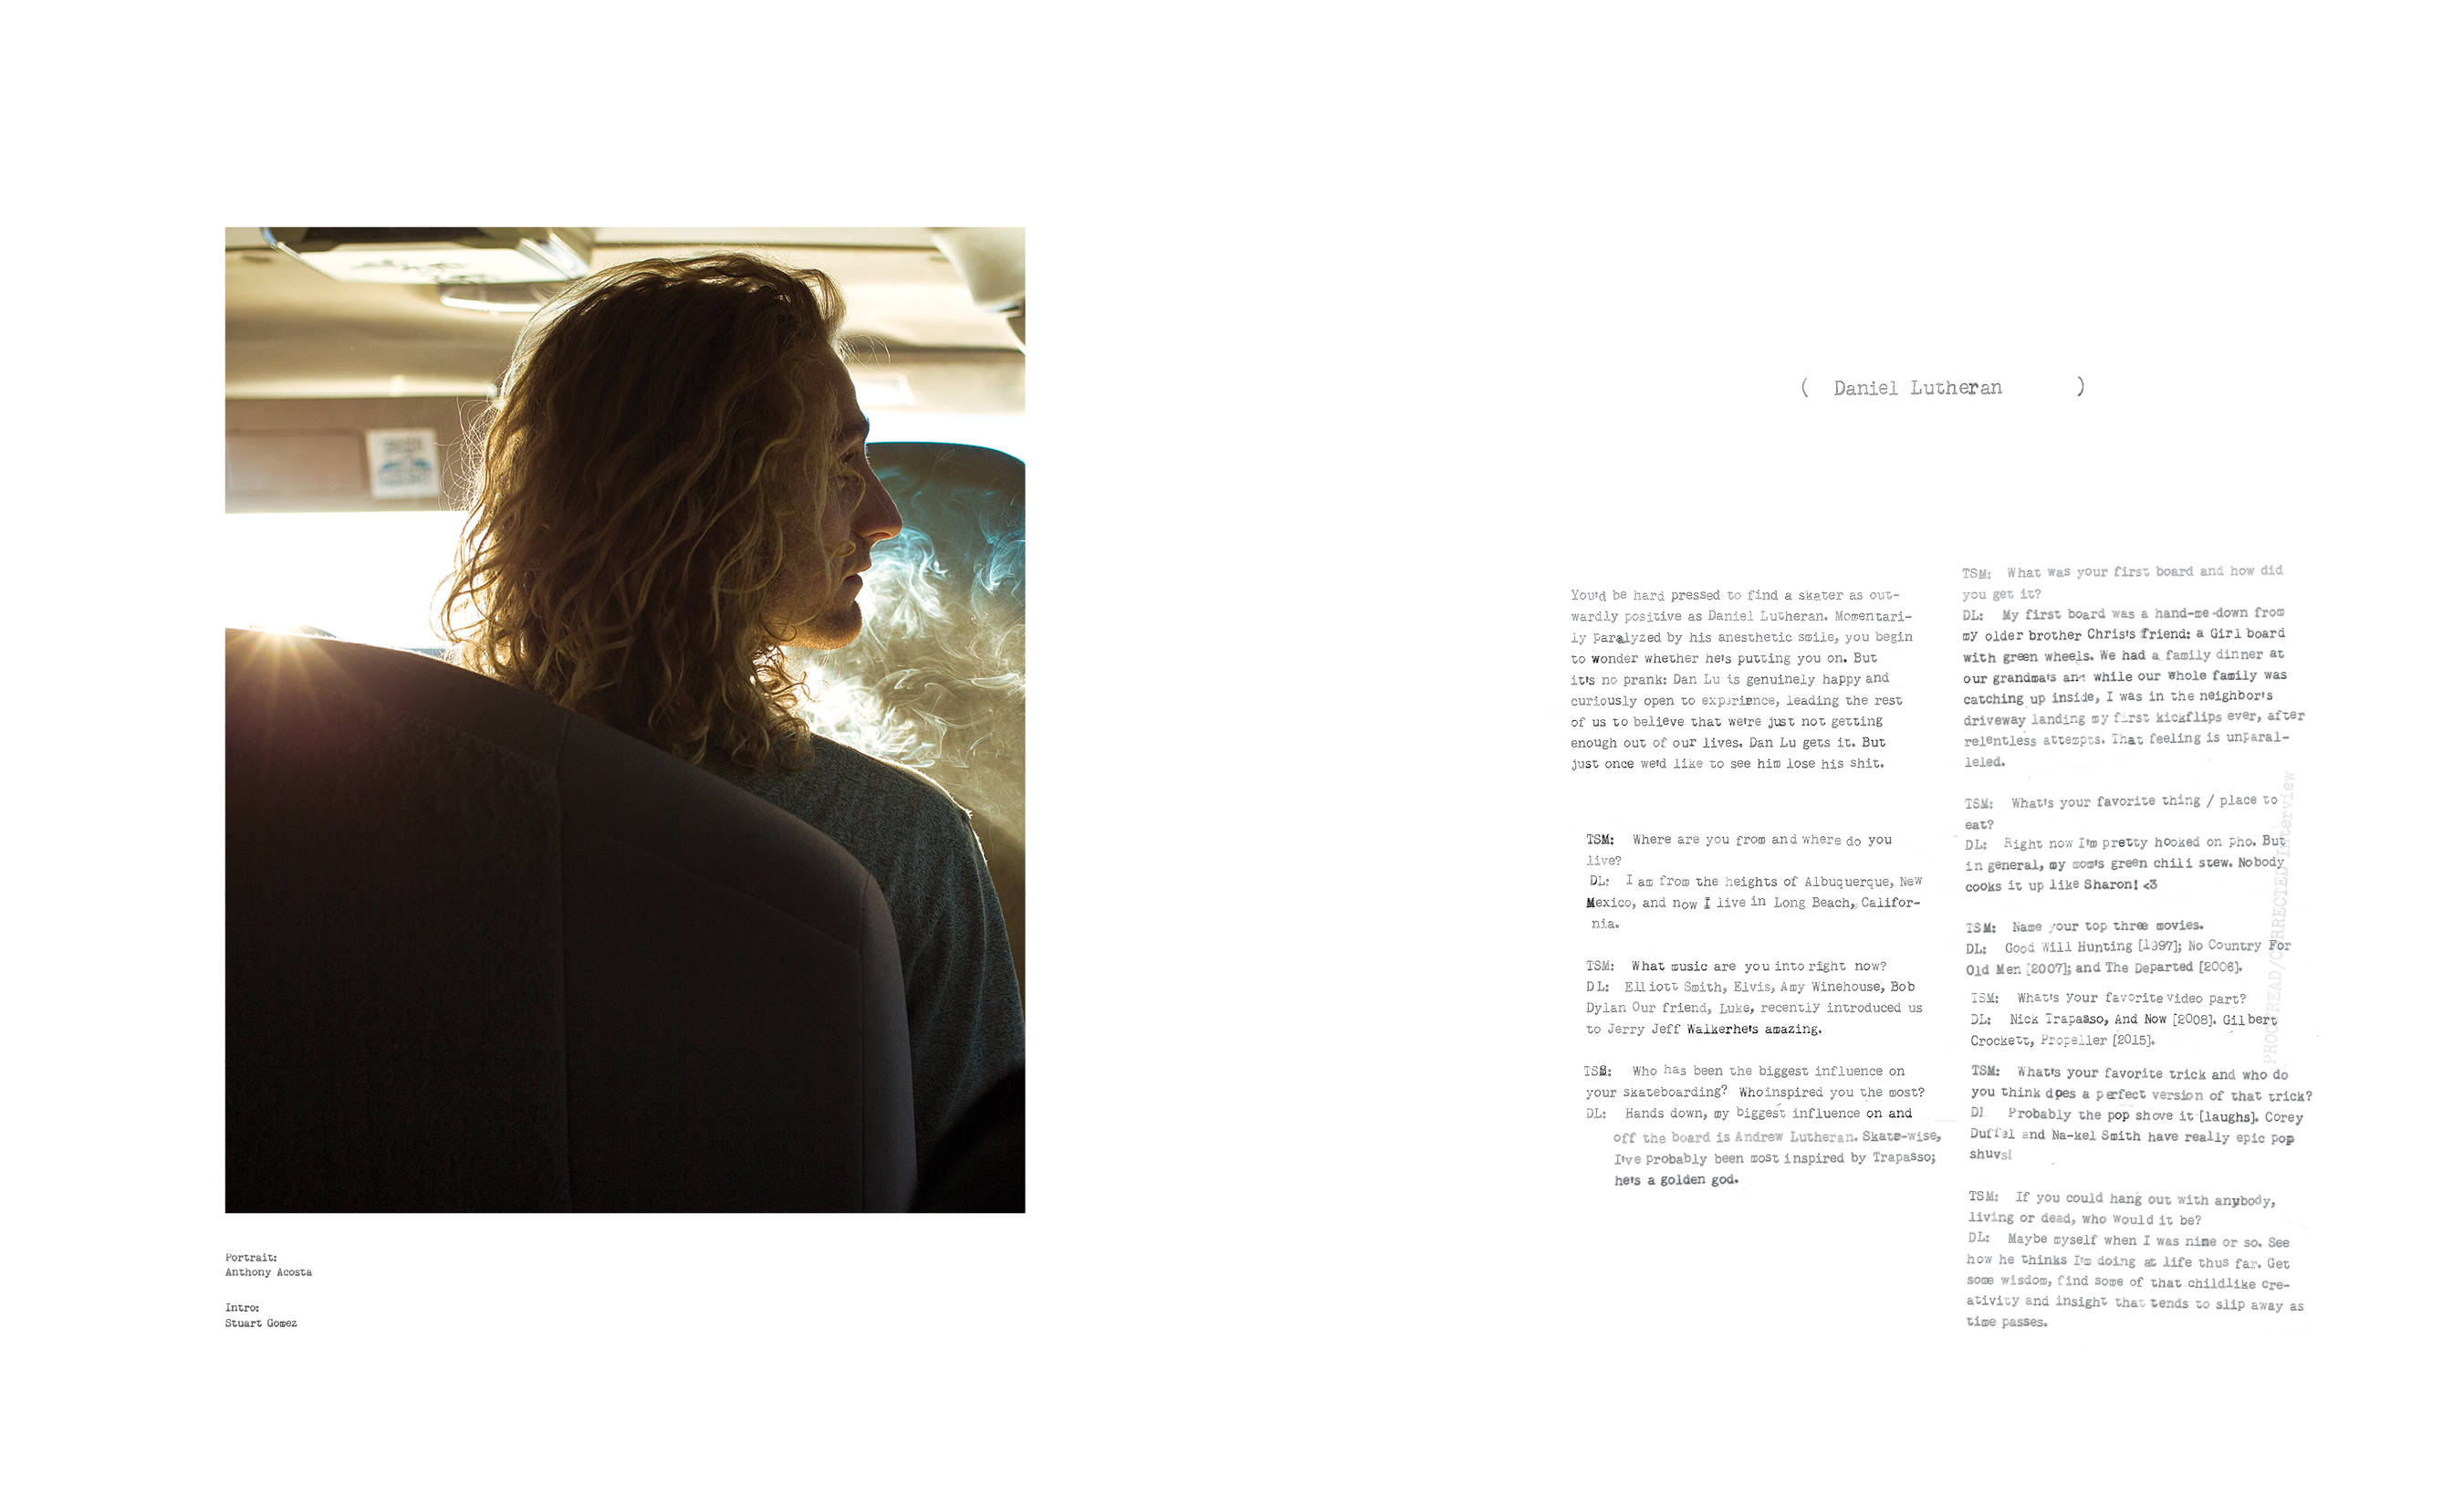 Daniel Lutheran The SKateboard Mag interview